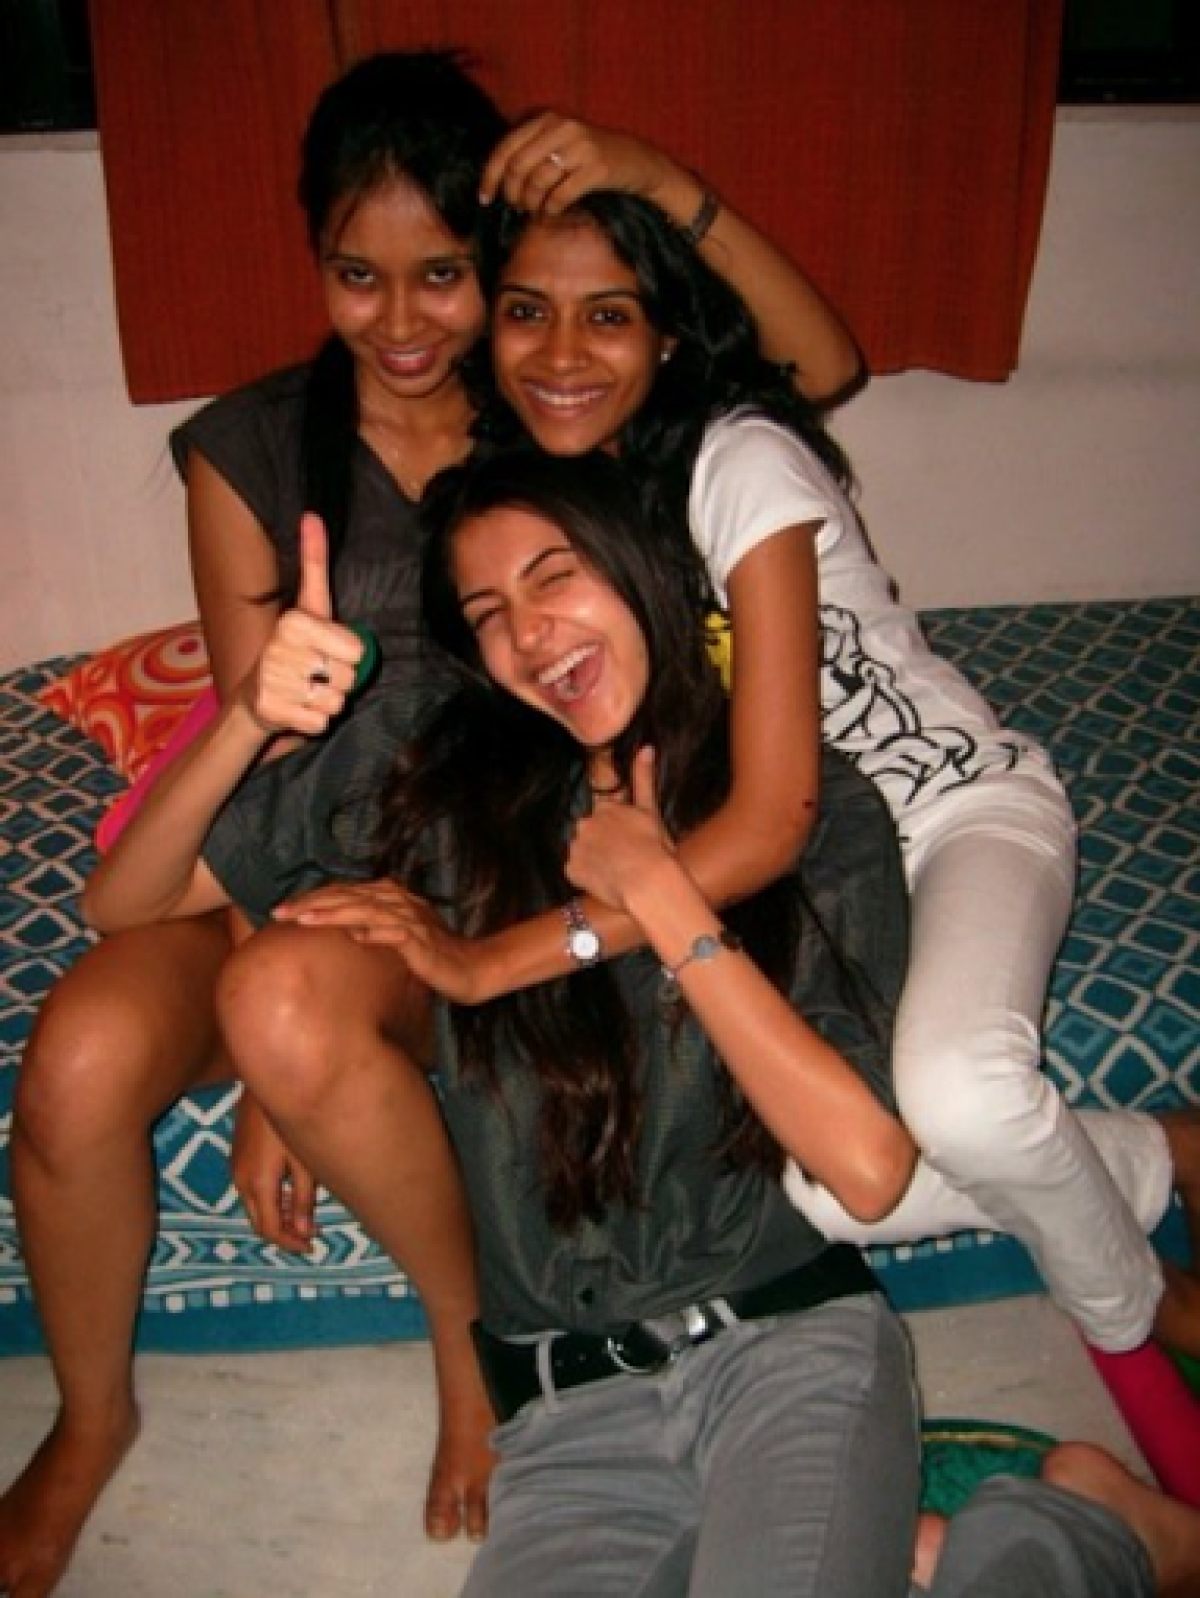 Anushka hanging out with friends